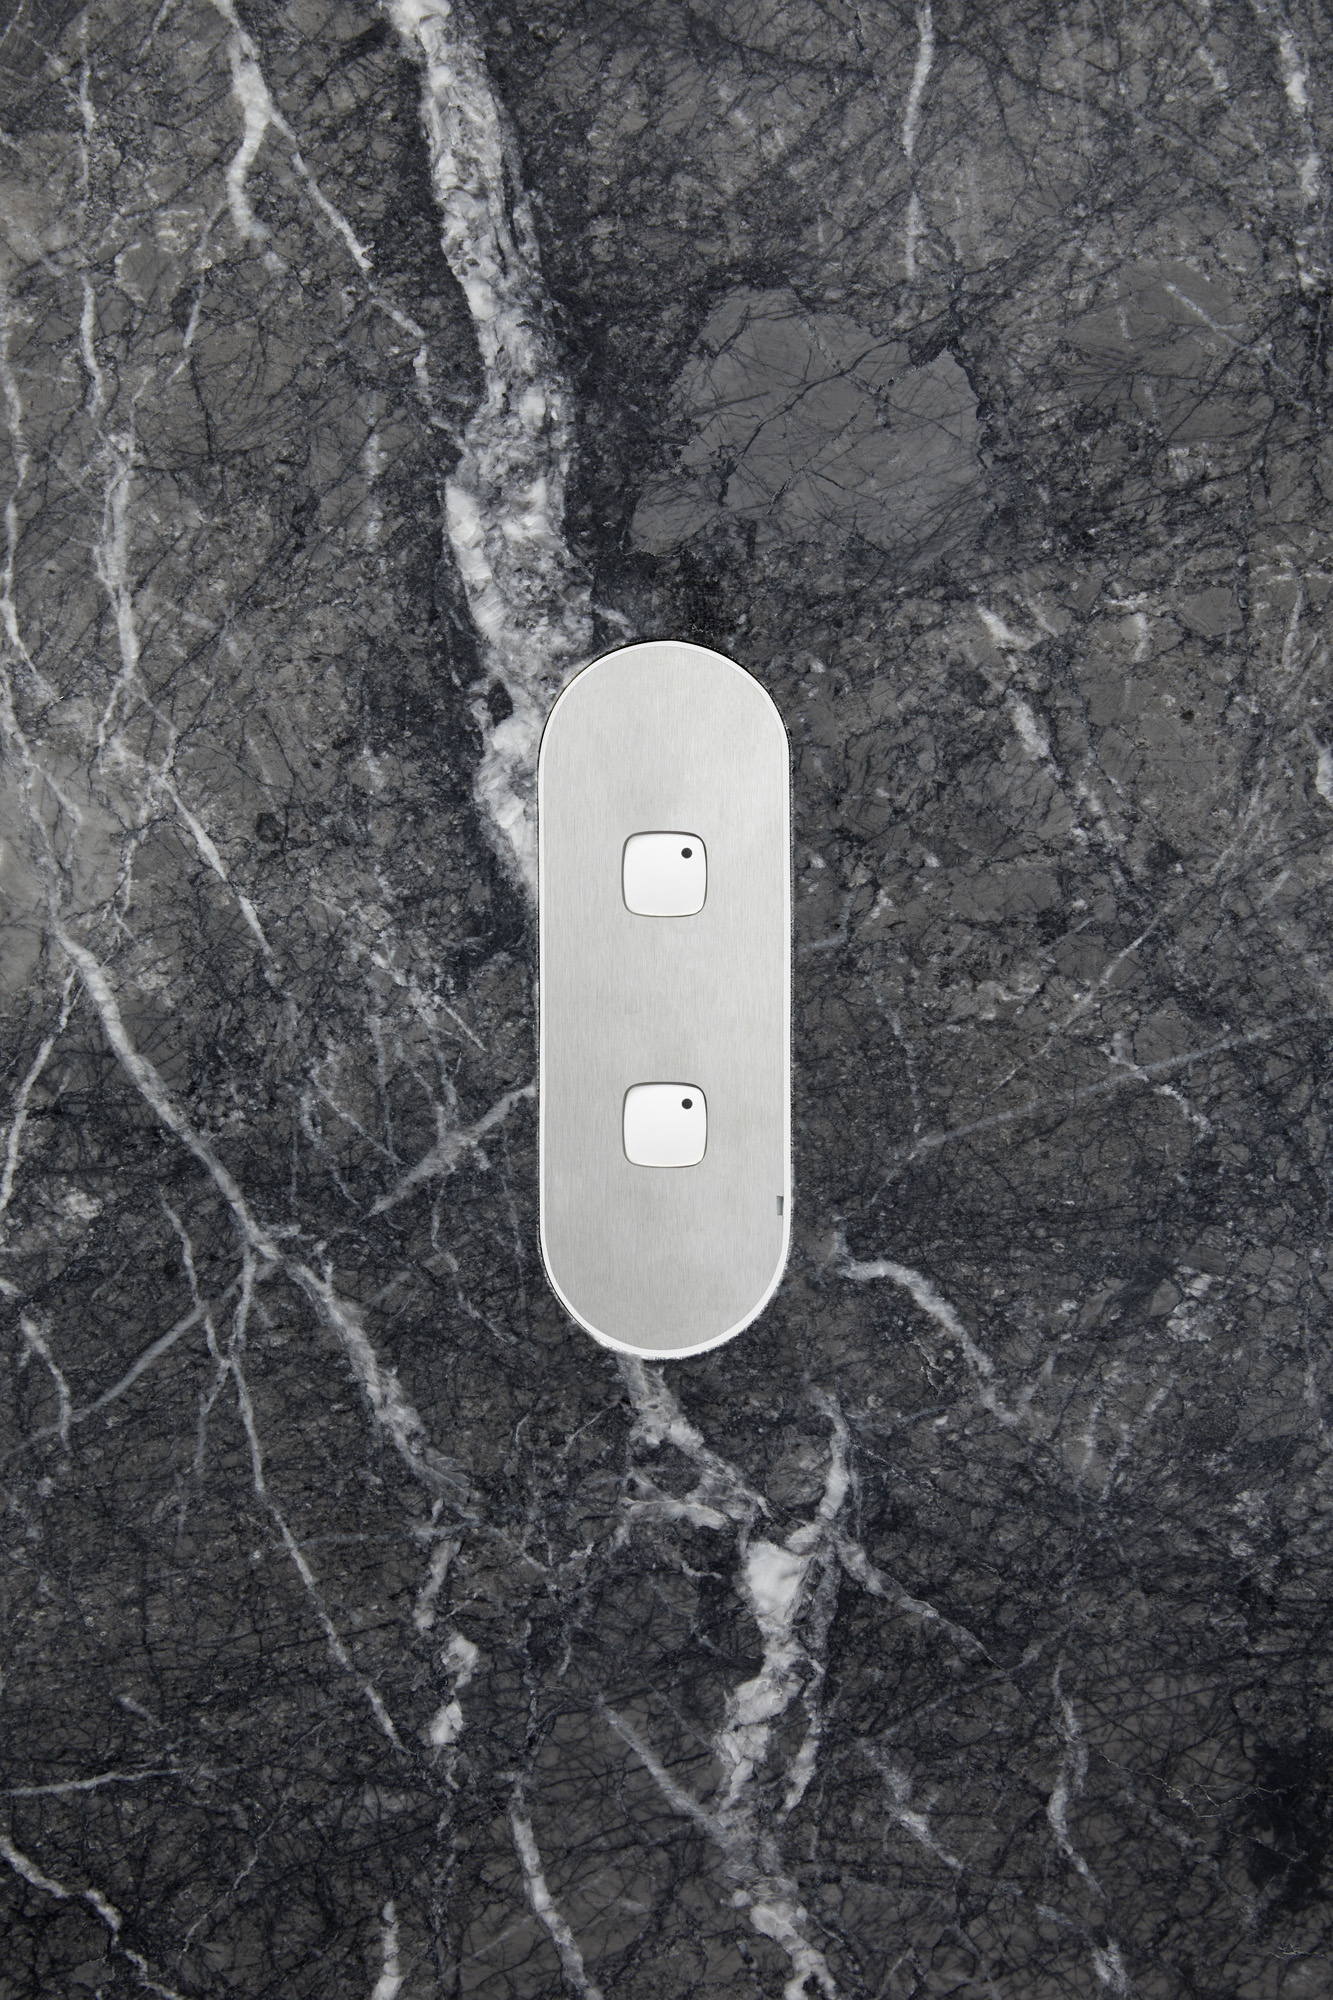 Two_Gang_Switch_Stainless_Steel_White_Button_Stone_Dark.jpg